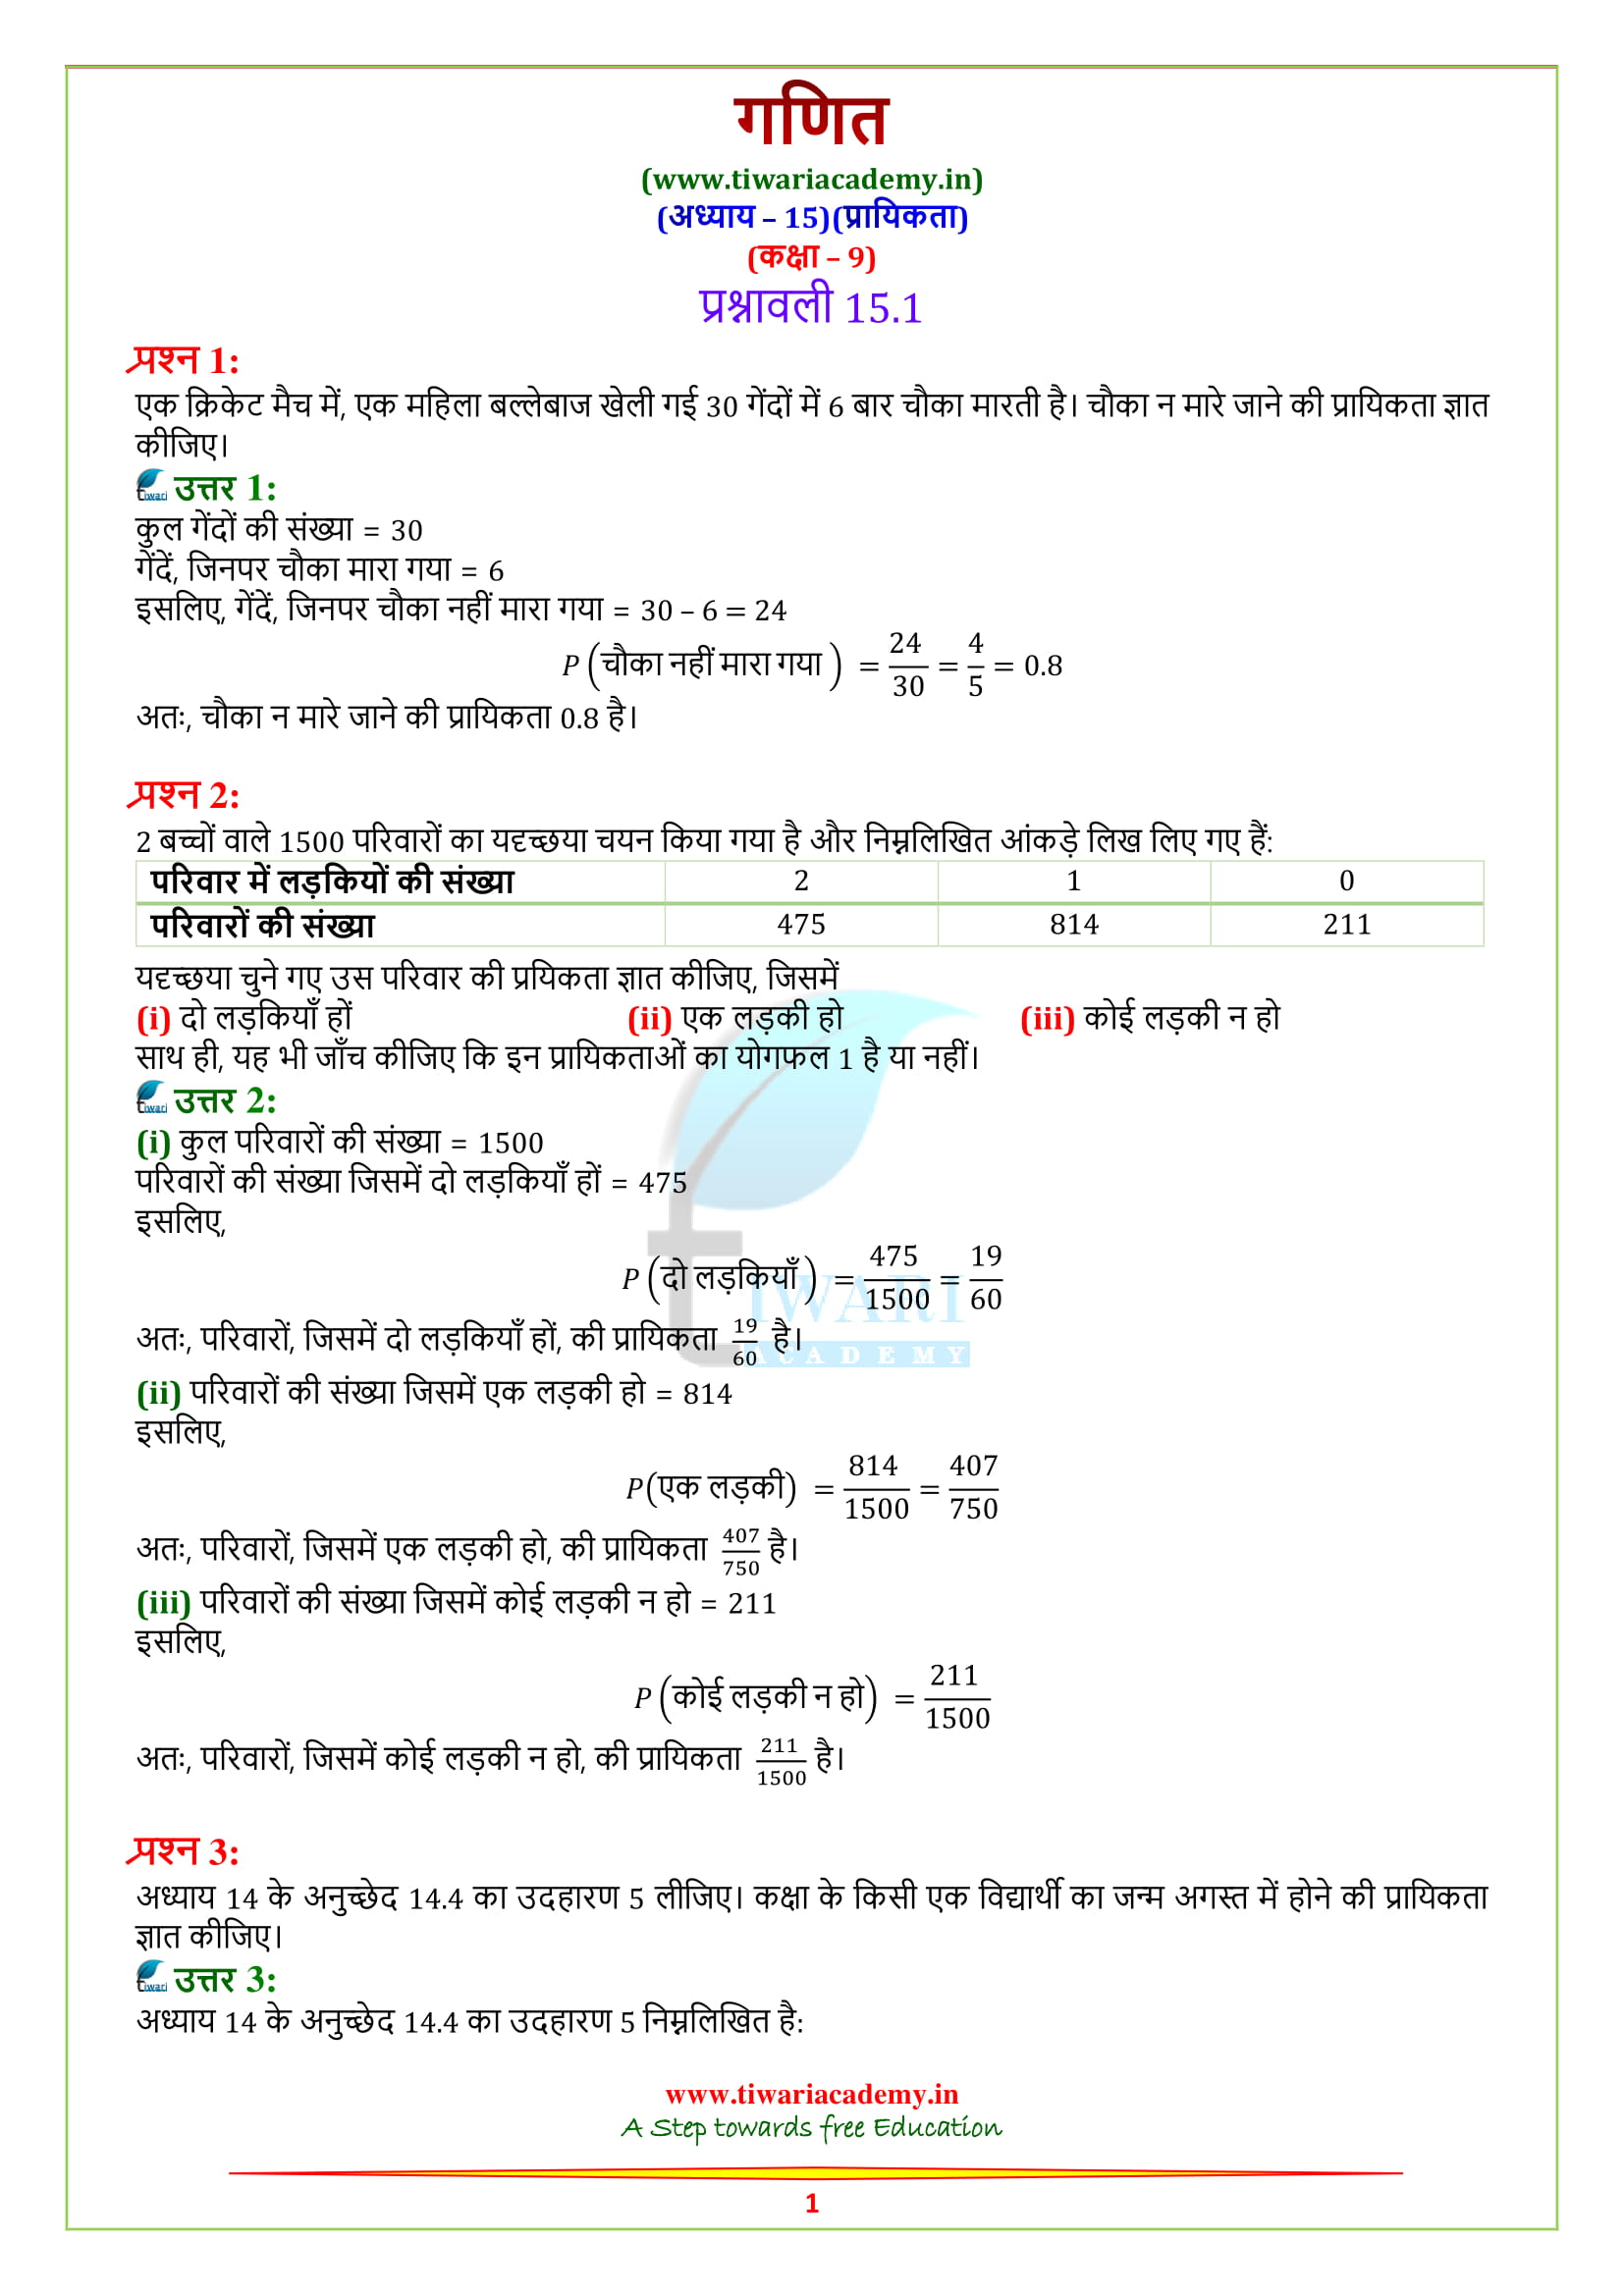 9 Maths Exercise 15.1 solutions in hindi